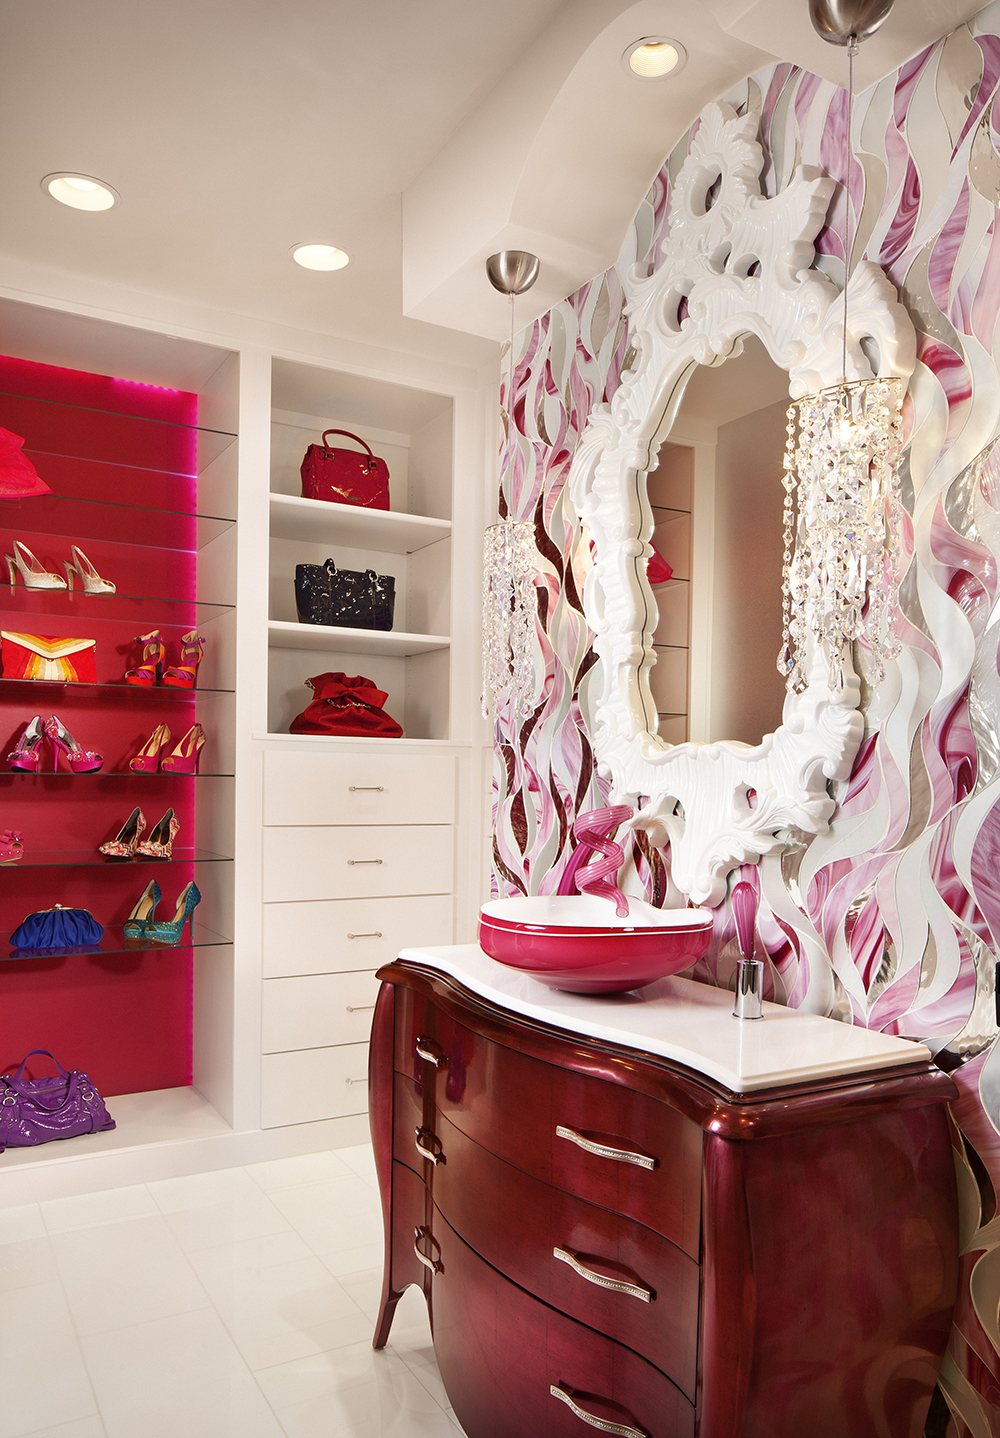 Bathroom designs 2016 - 8 Pretty In Pink